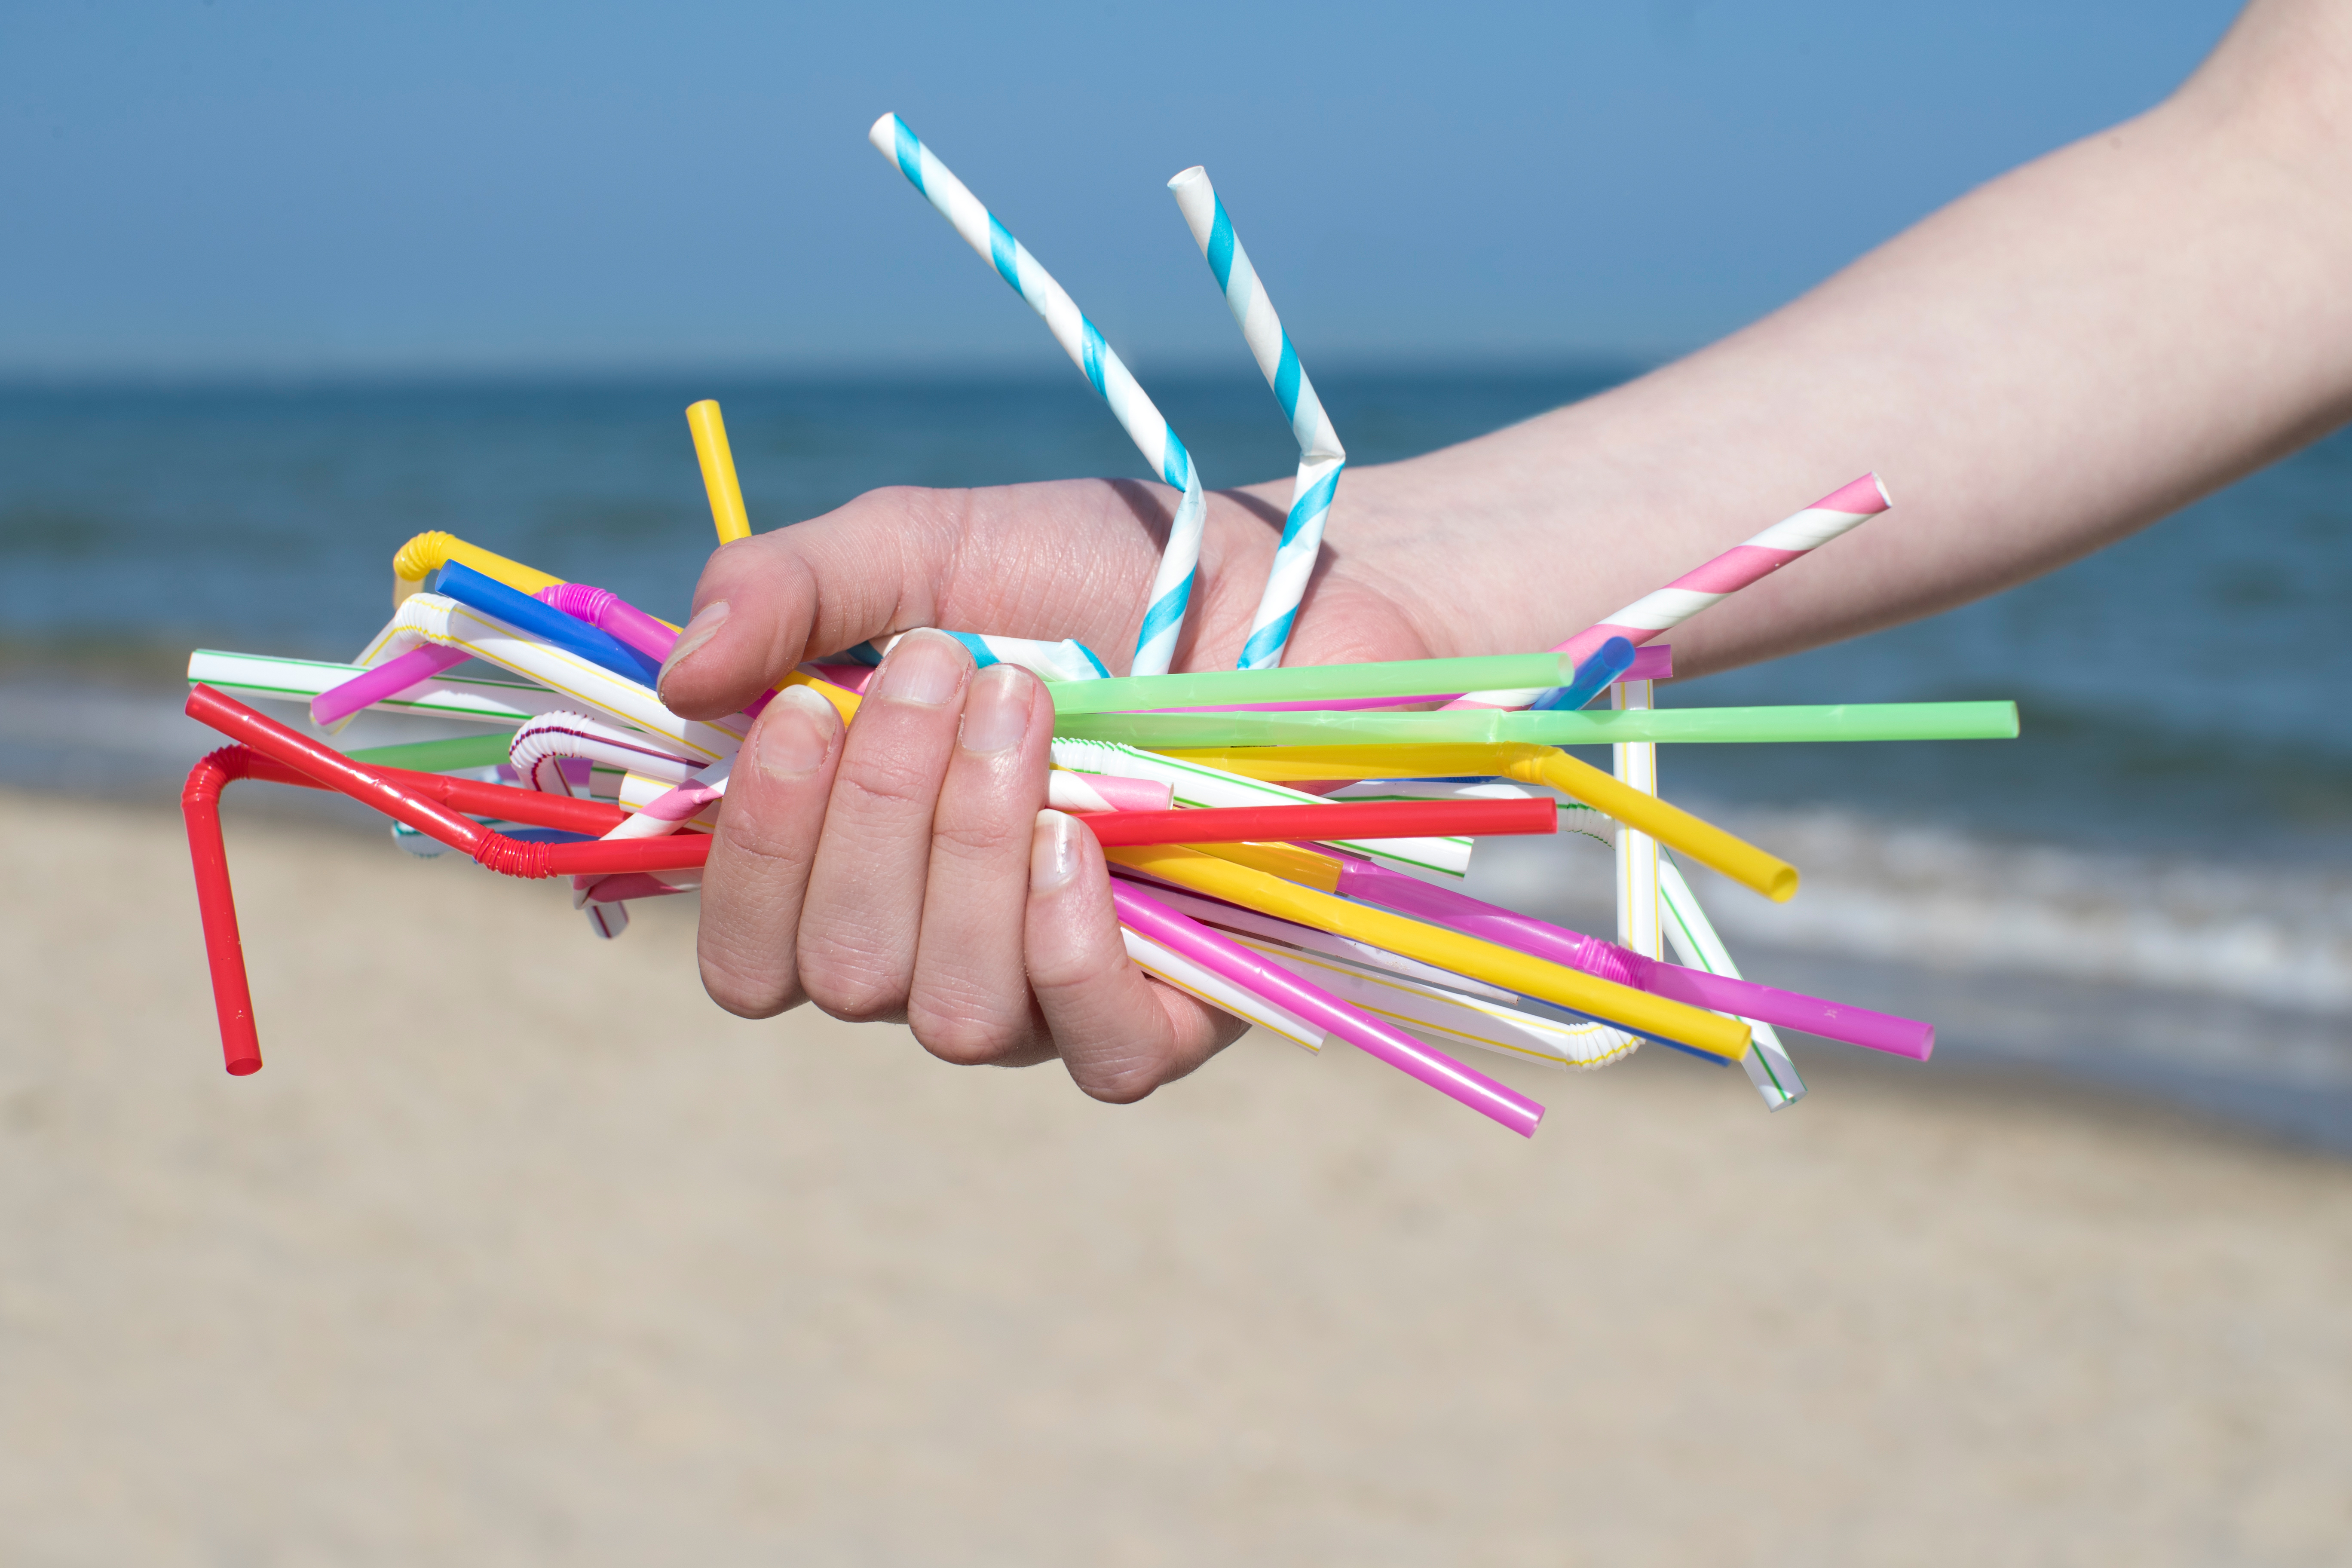 Plastic-Free Suction: the Straw